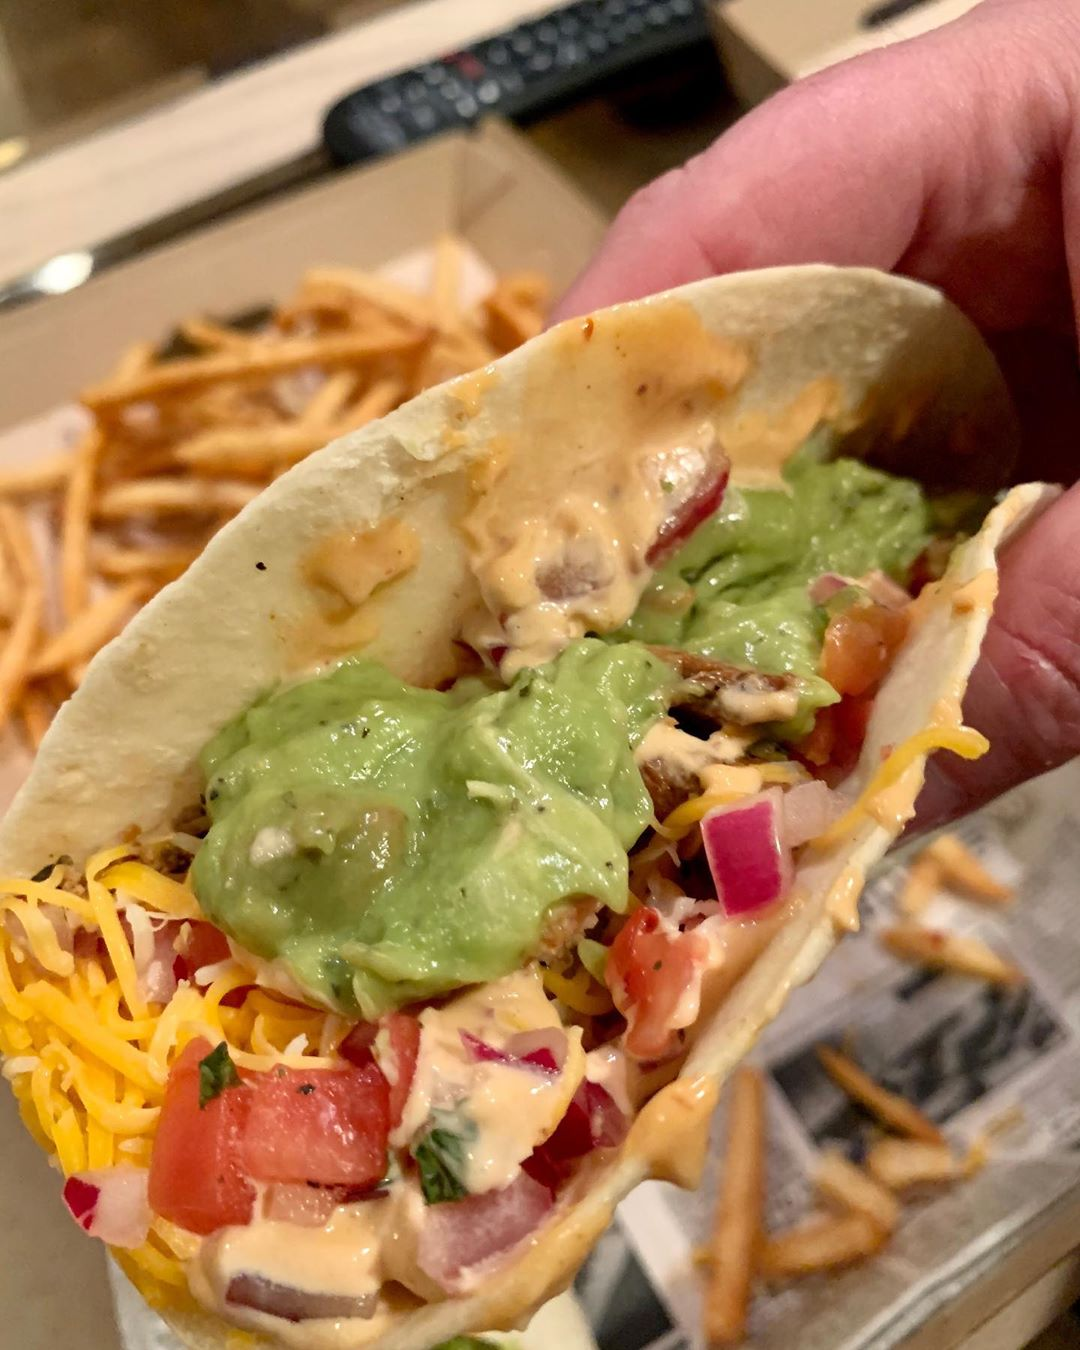 LBI 8.14.2020 – It's not vacation without tacos! Jerk chicken with cheese, pico de g…